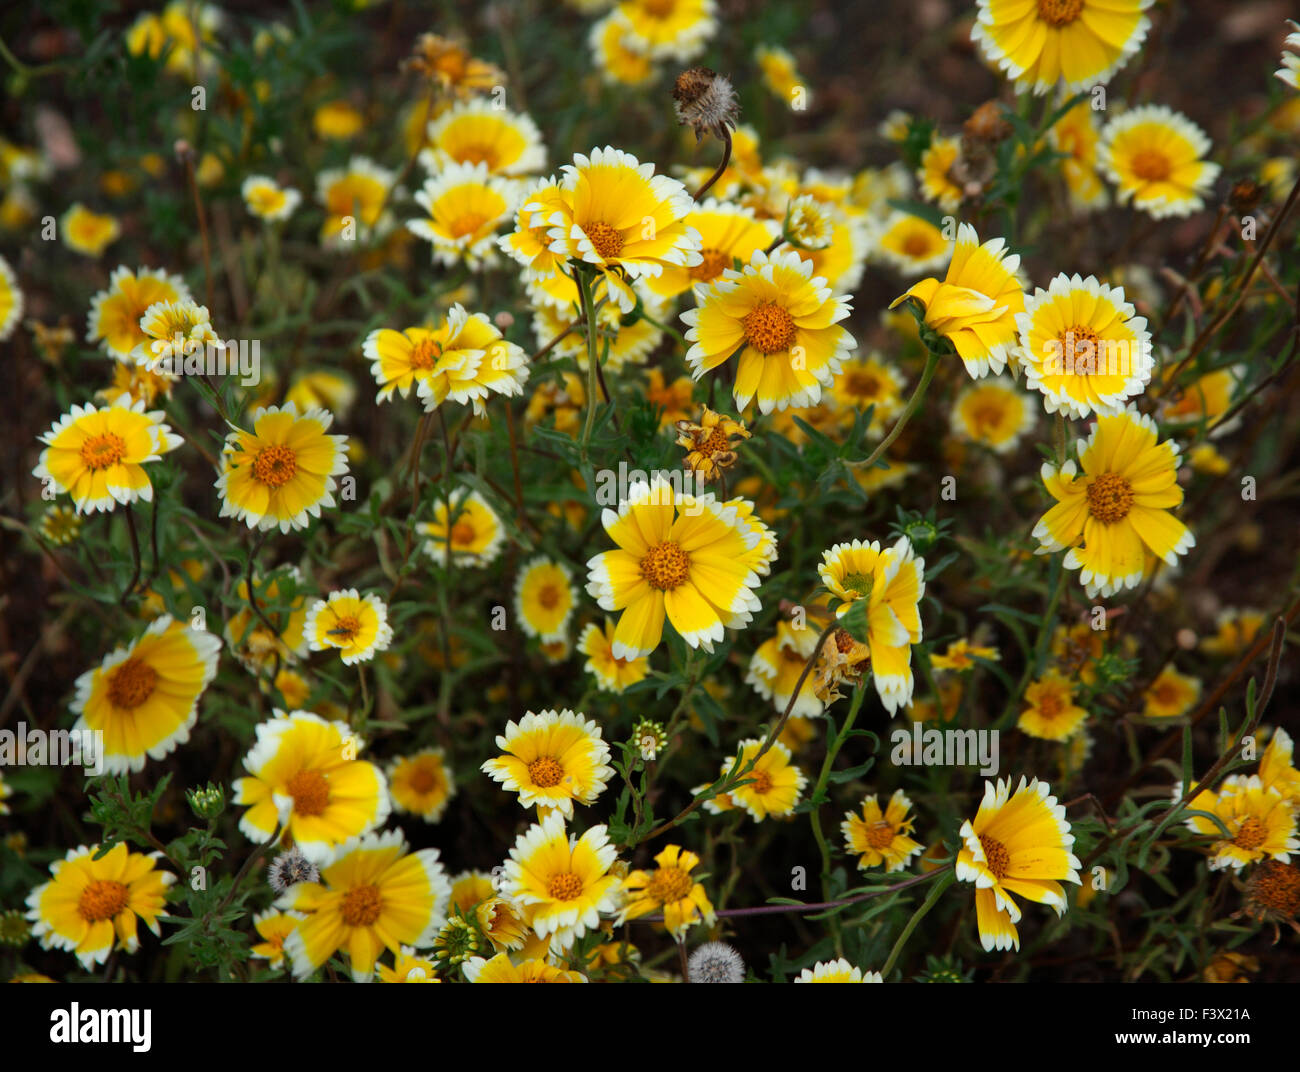 Layia platyglossa 'Tidy tips' plant in flower - Stock Image